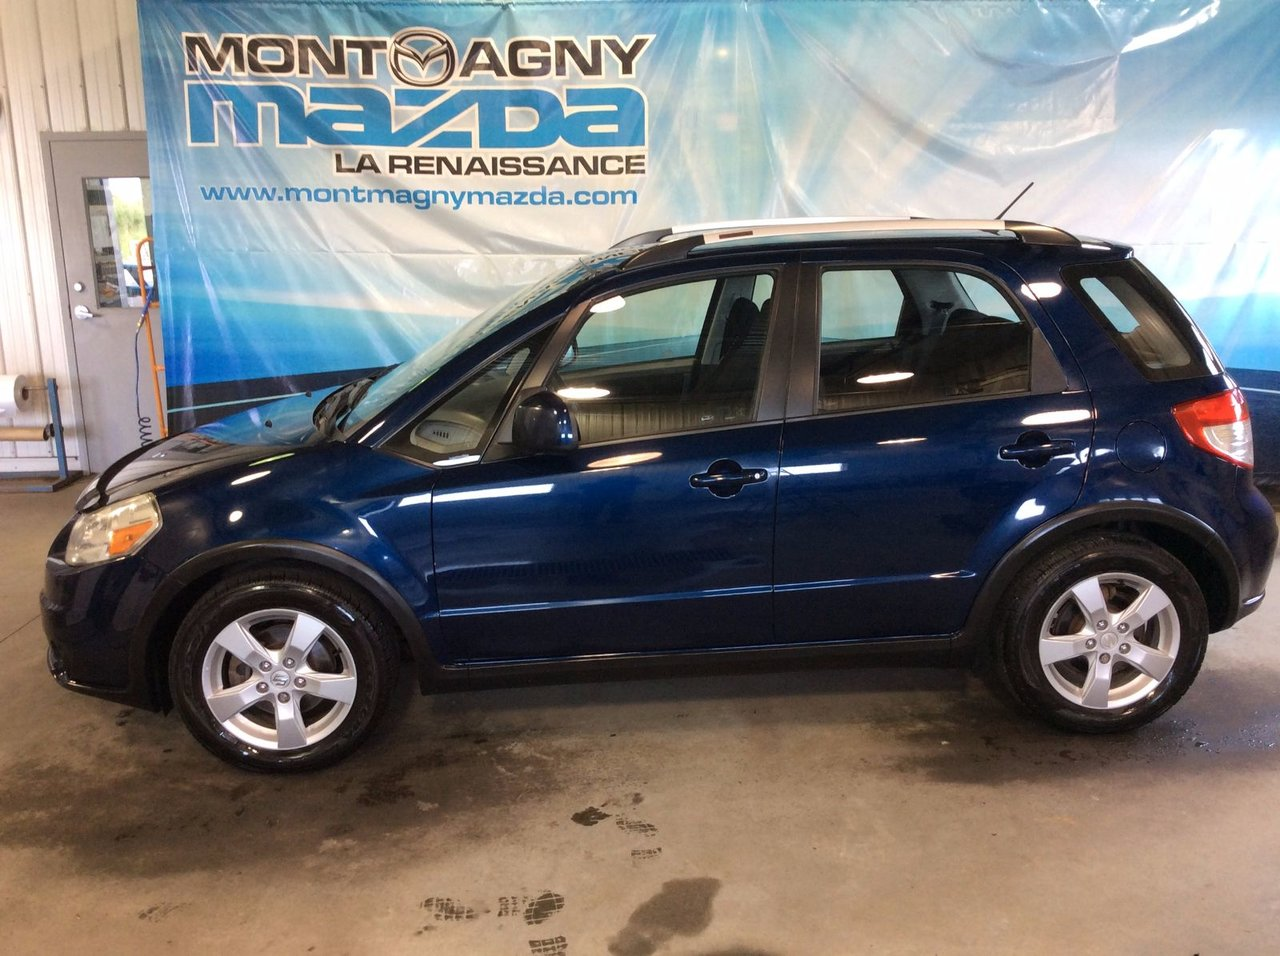 2008 suzuki sx4 hatchback jlx awd review photo gallery pictures to pin on pinterest